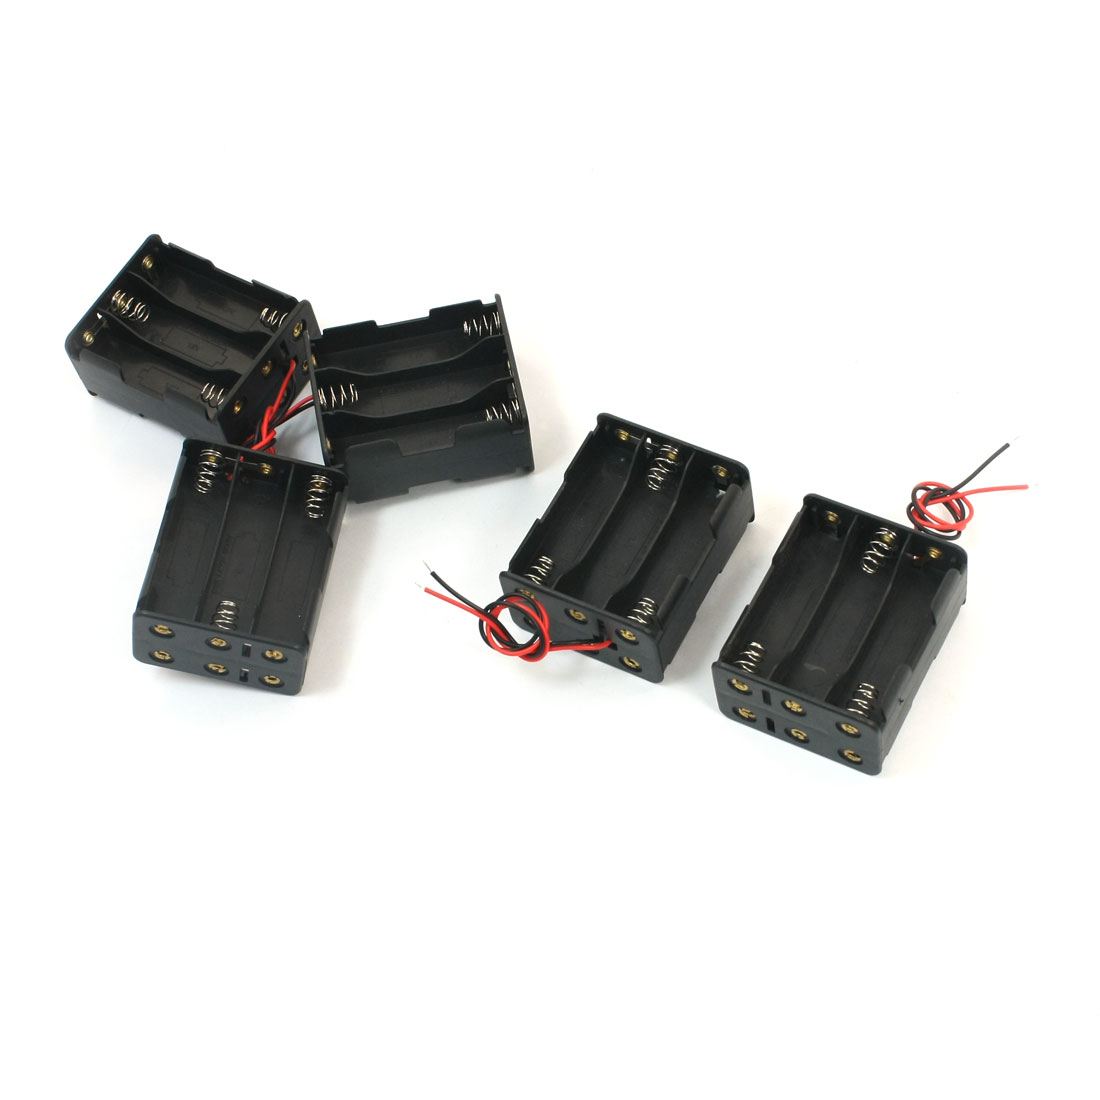 5 Pcs Spring Loaded 2-Wired Double Sides Plastic Shell 6 x 1.5V AA Battery Holder Case Storage Box